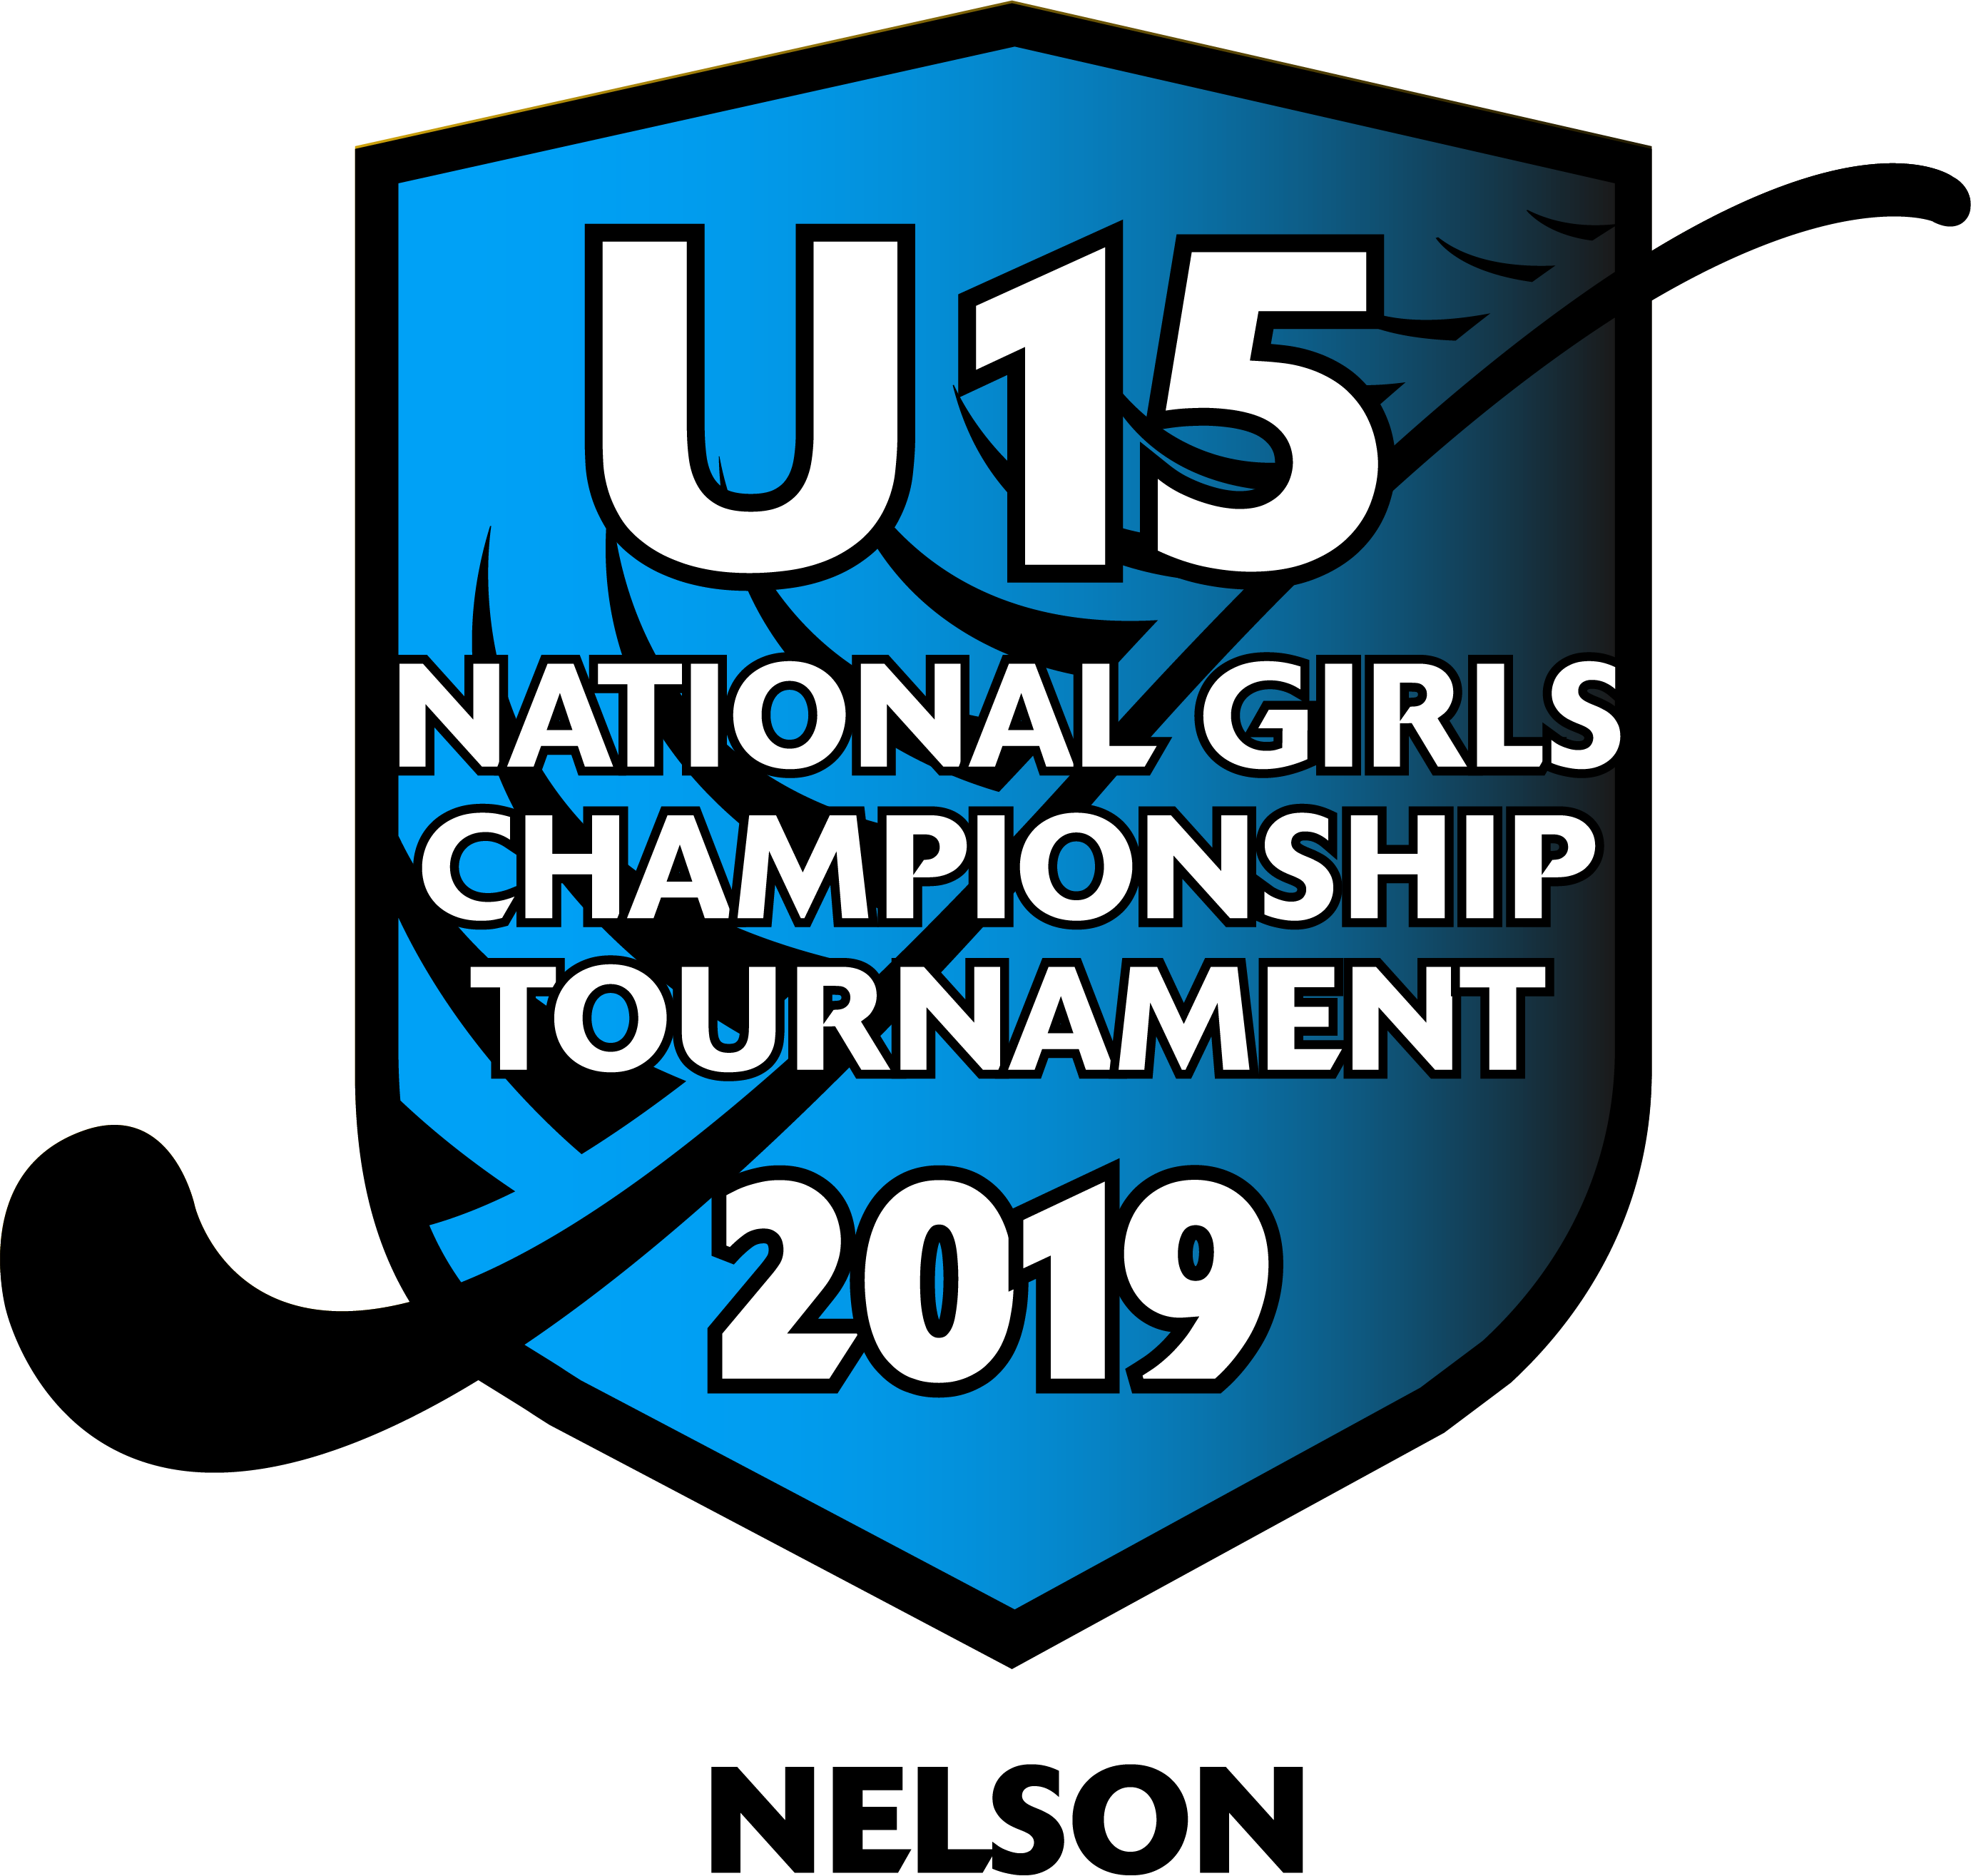 U15 GIRLS NATIONAL CHAMPIONSHIPS-(Draw)